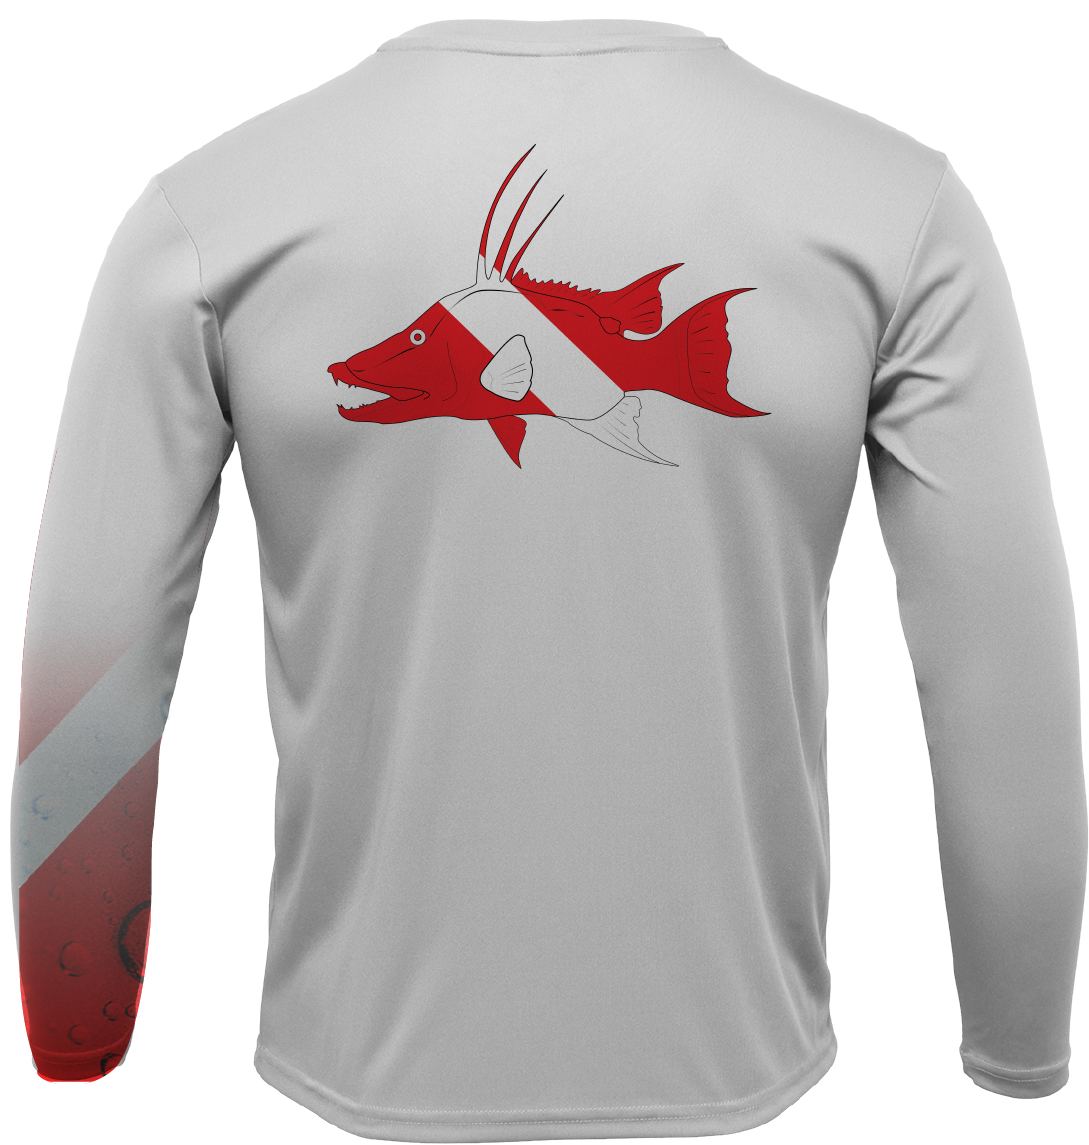 Hogfish Diver Scuba Wrap Long Sleeve UPF 50+ Dry-Fit Shirt